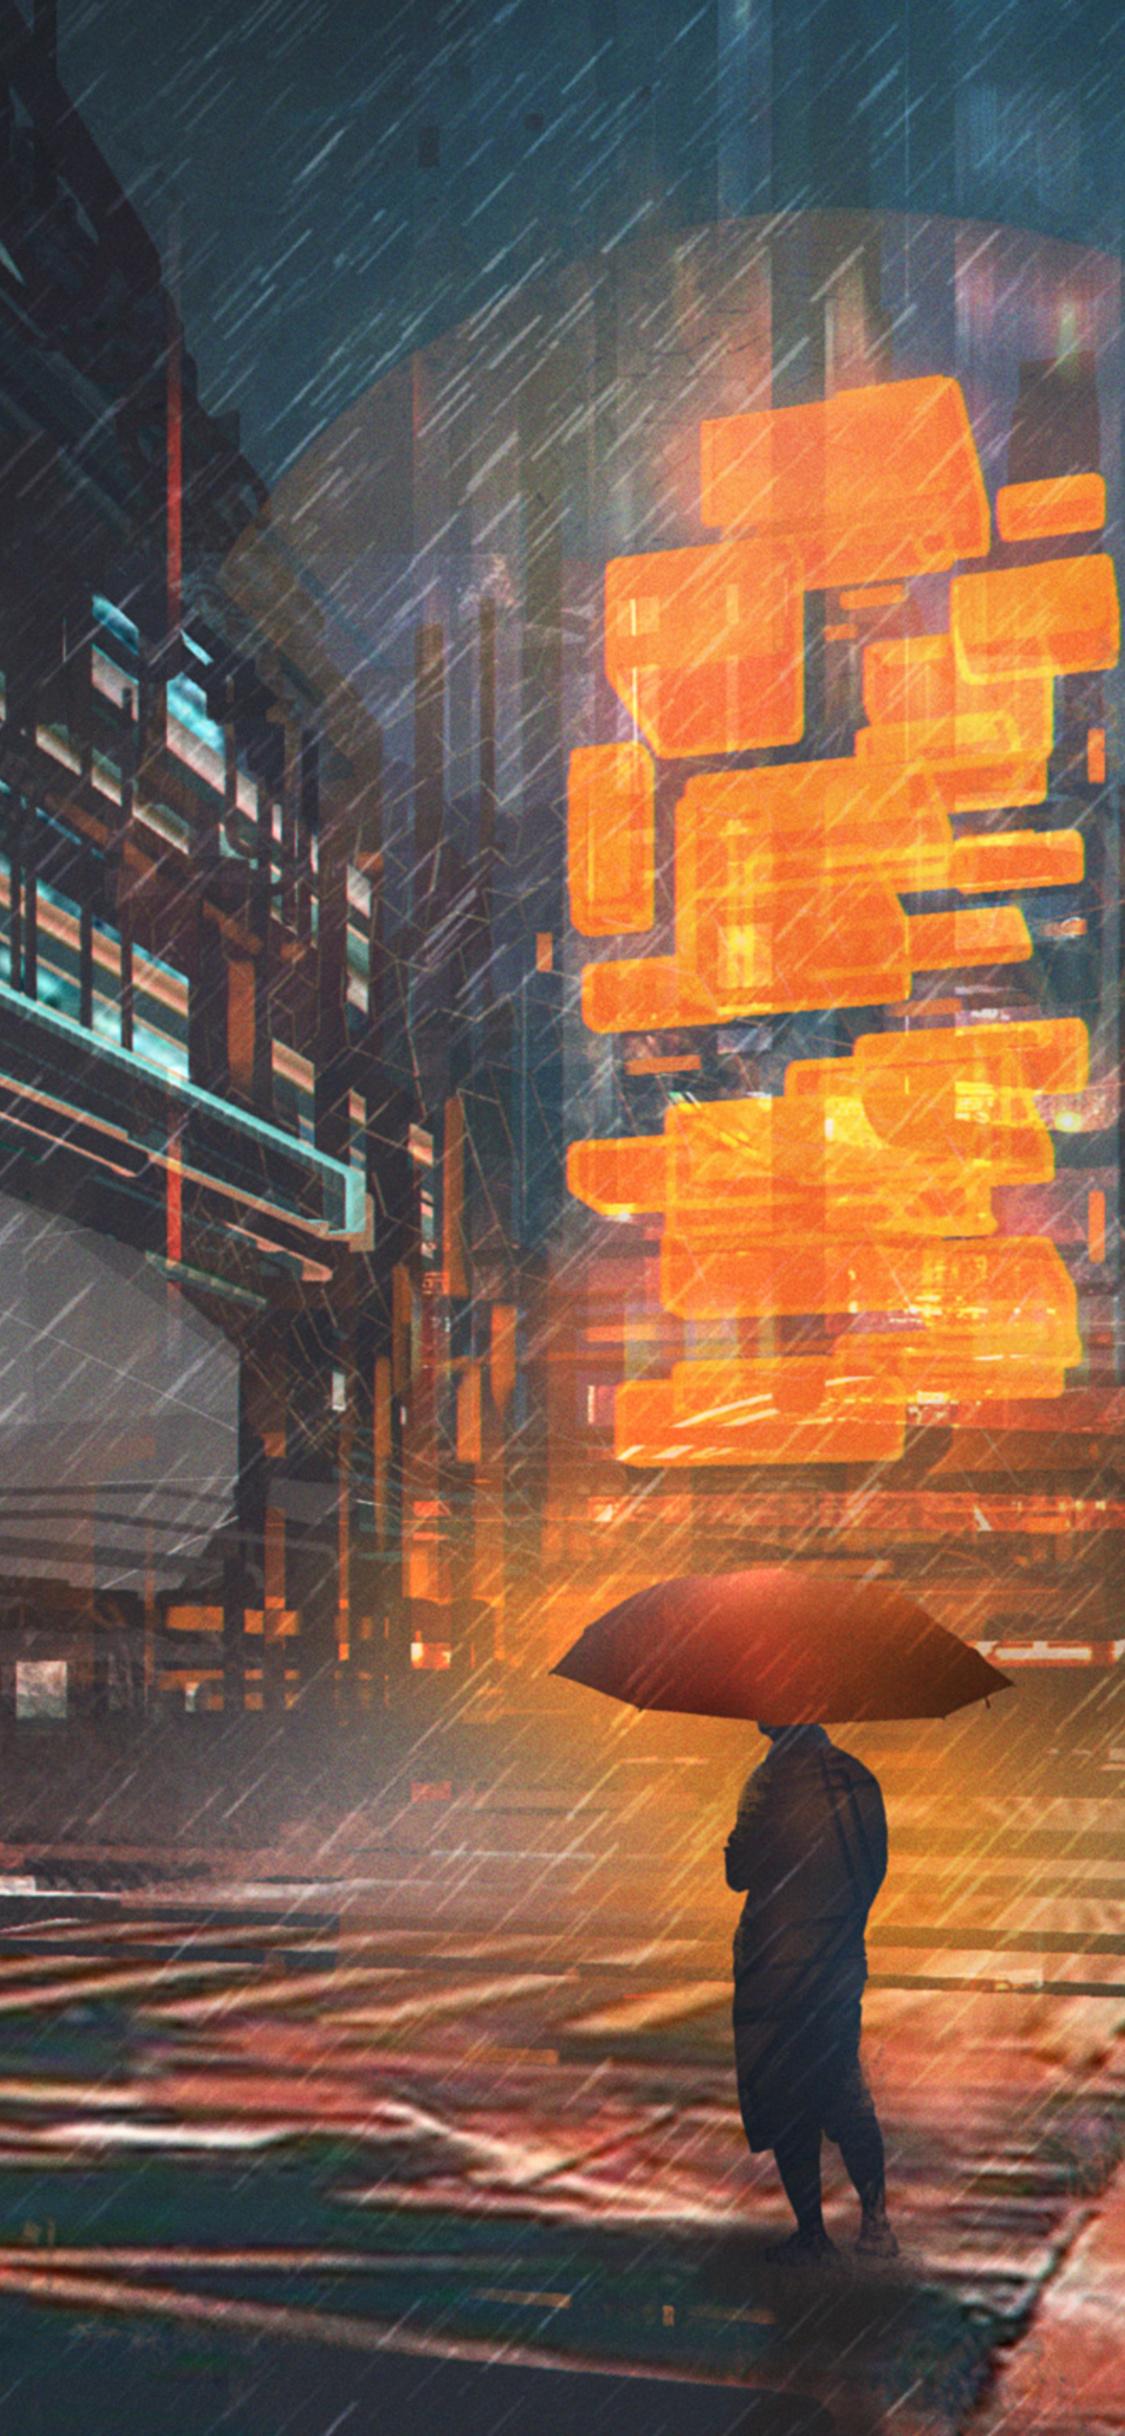 rainy-night-man-with-umbrella-scifi-drawings-digital-art-hu.jpg